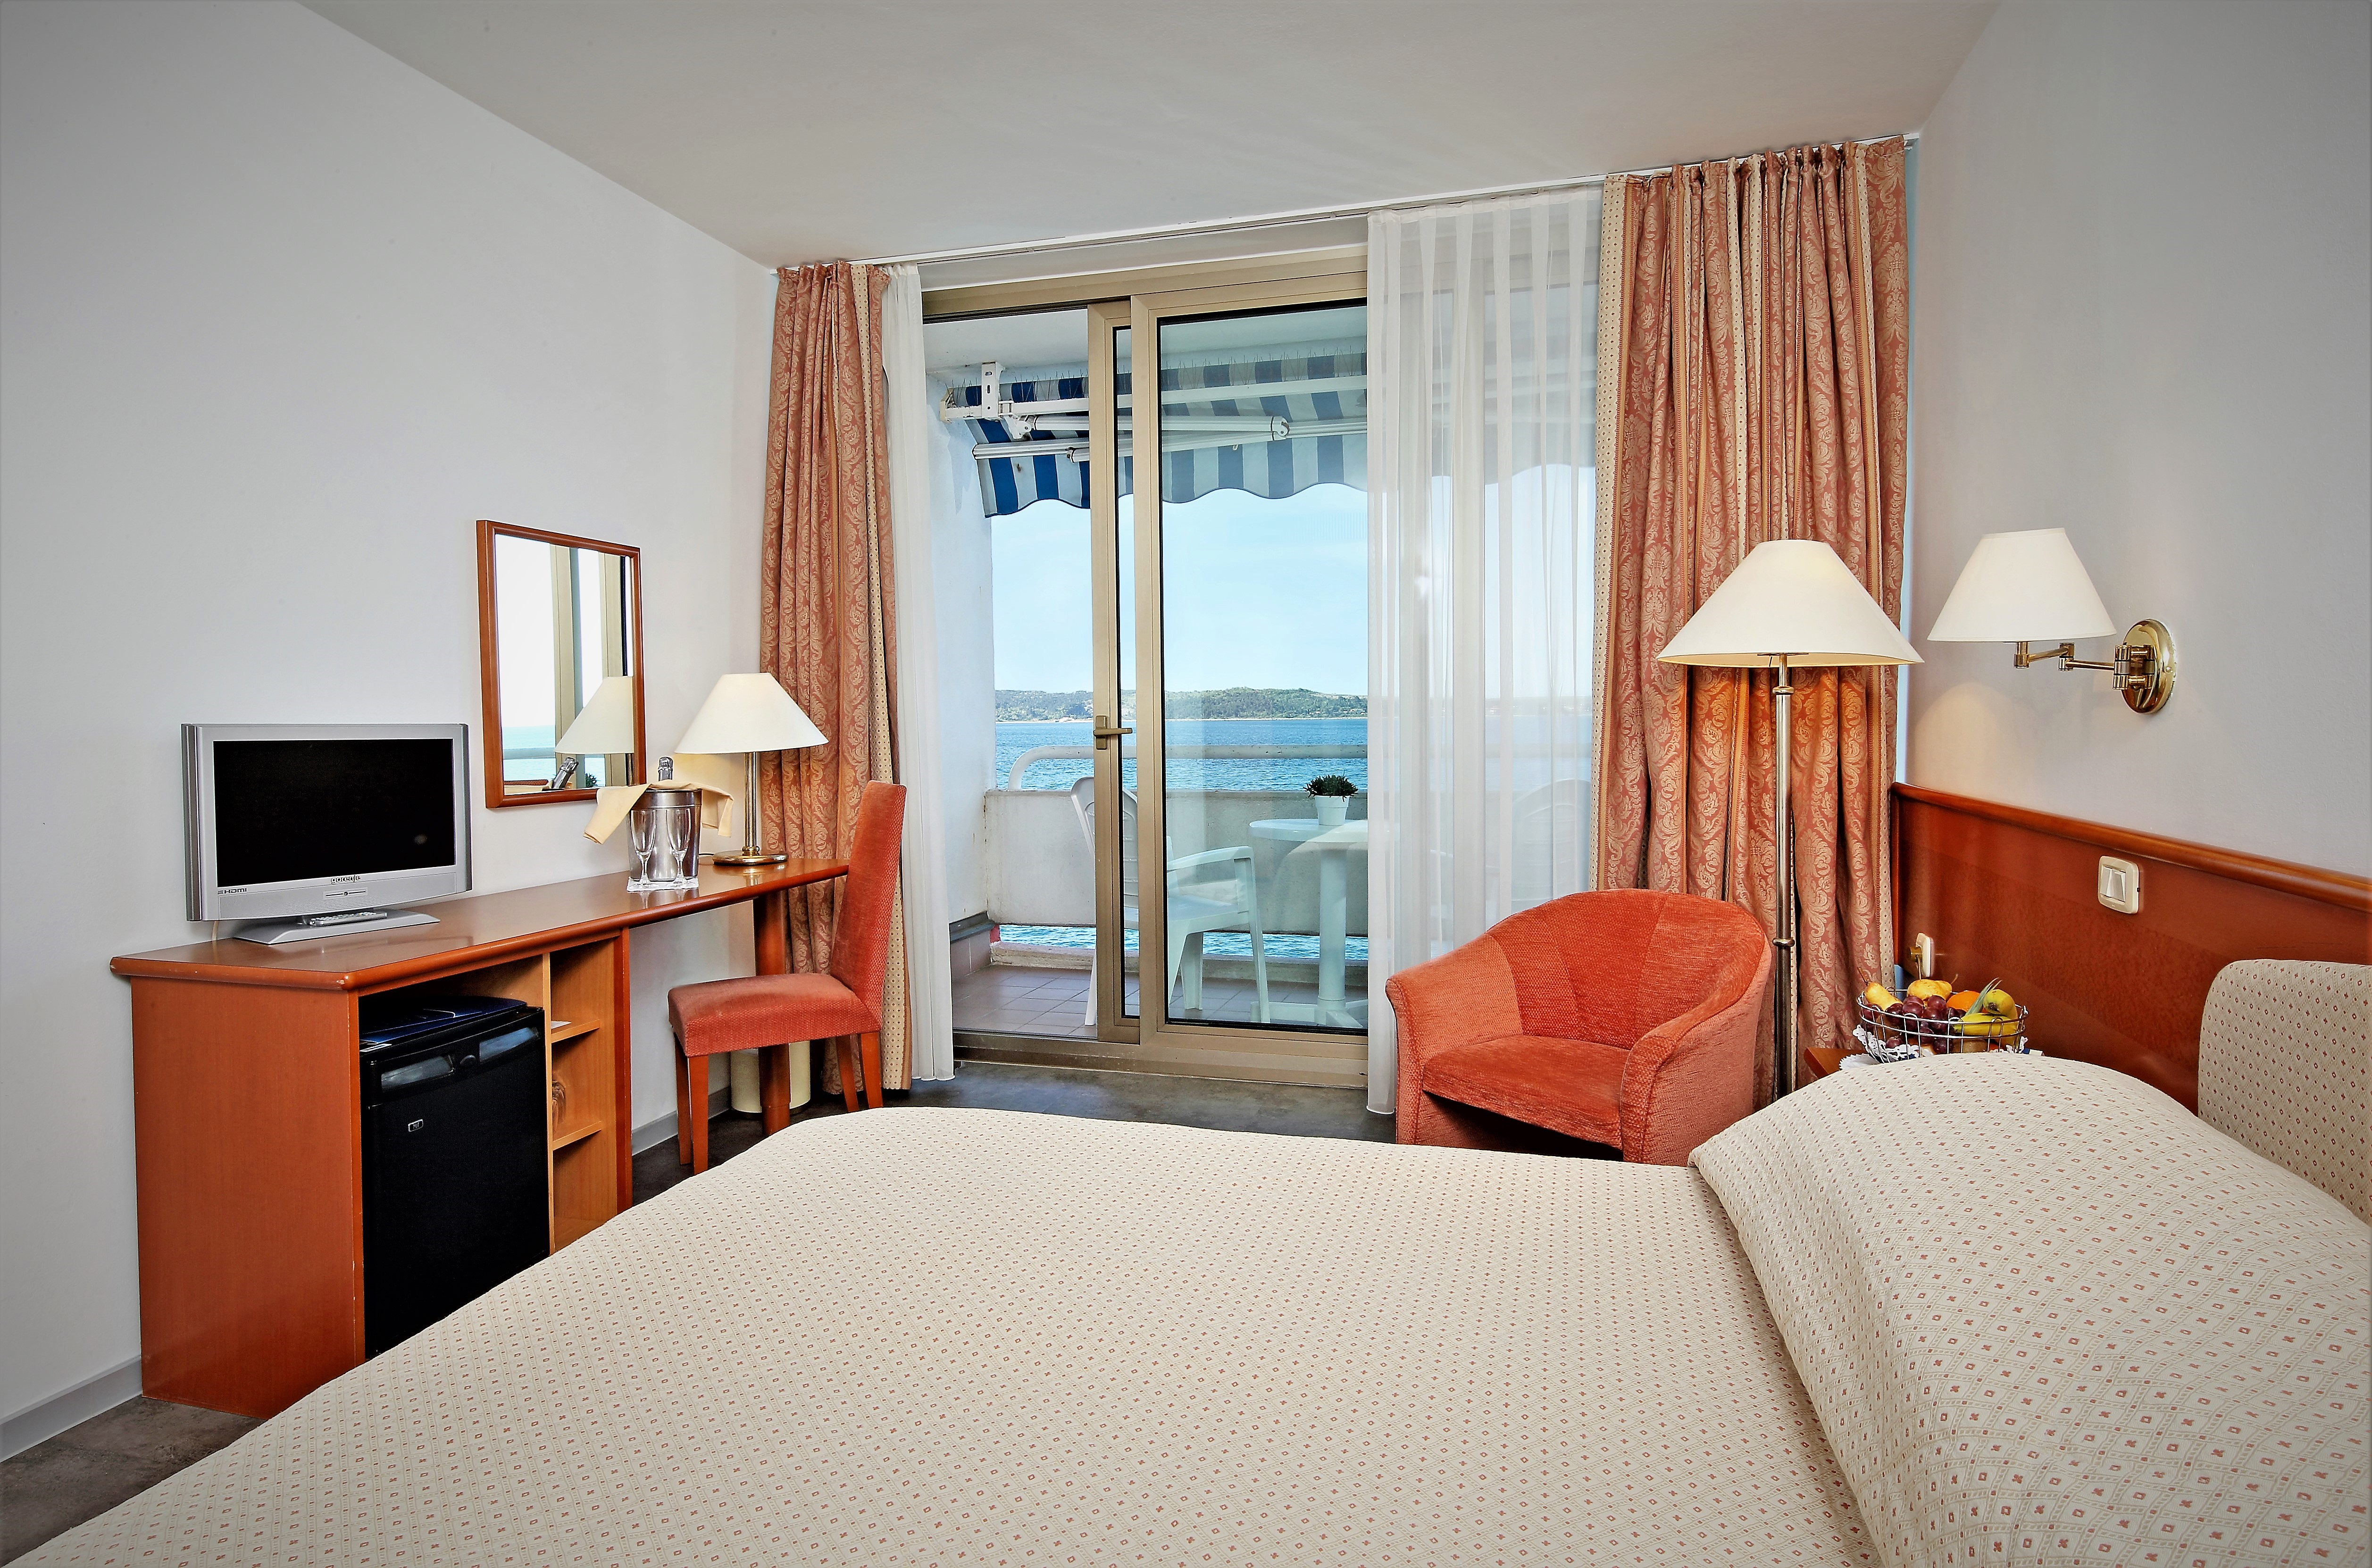 http://www.travelsys.sk/public/users/paxtour/images/fotogaleria_hotel/l_hh_room_sv_connecting.jpg.jpg